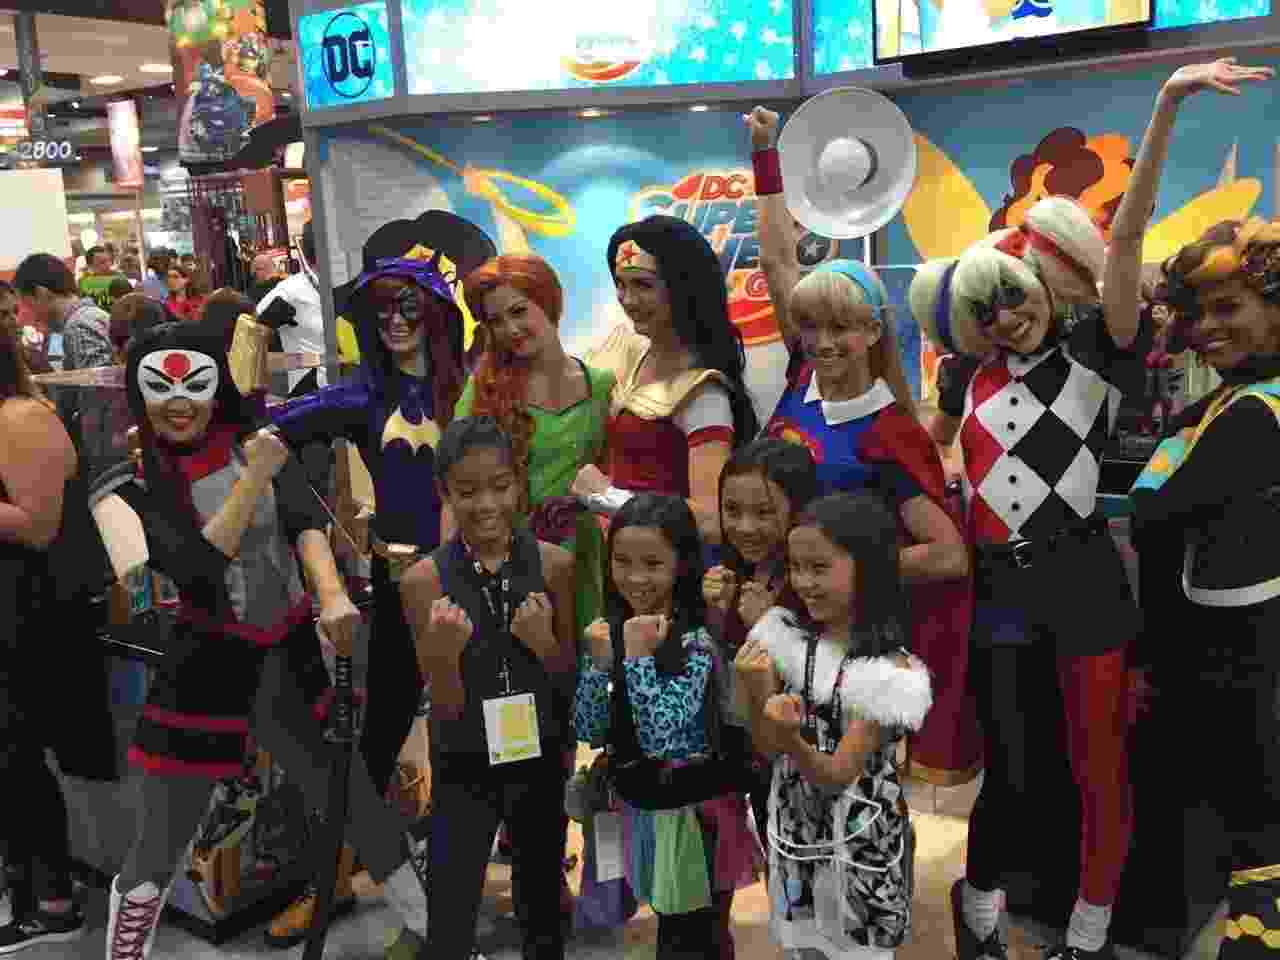 21.jul.2016 - Super Hero Girls protagonizam momento fofo na San Diego Comic-Con - Felipe Branco Cruz/UOL